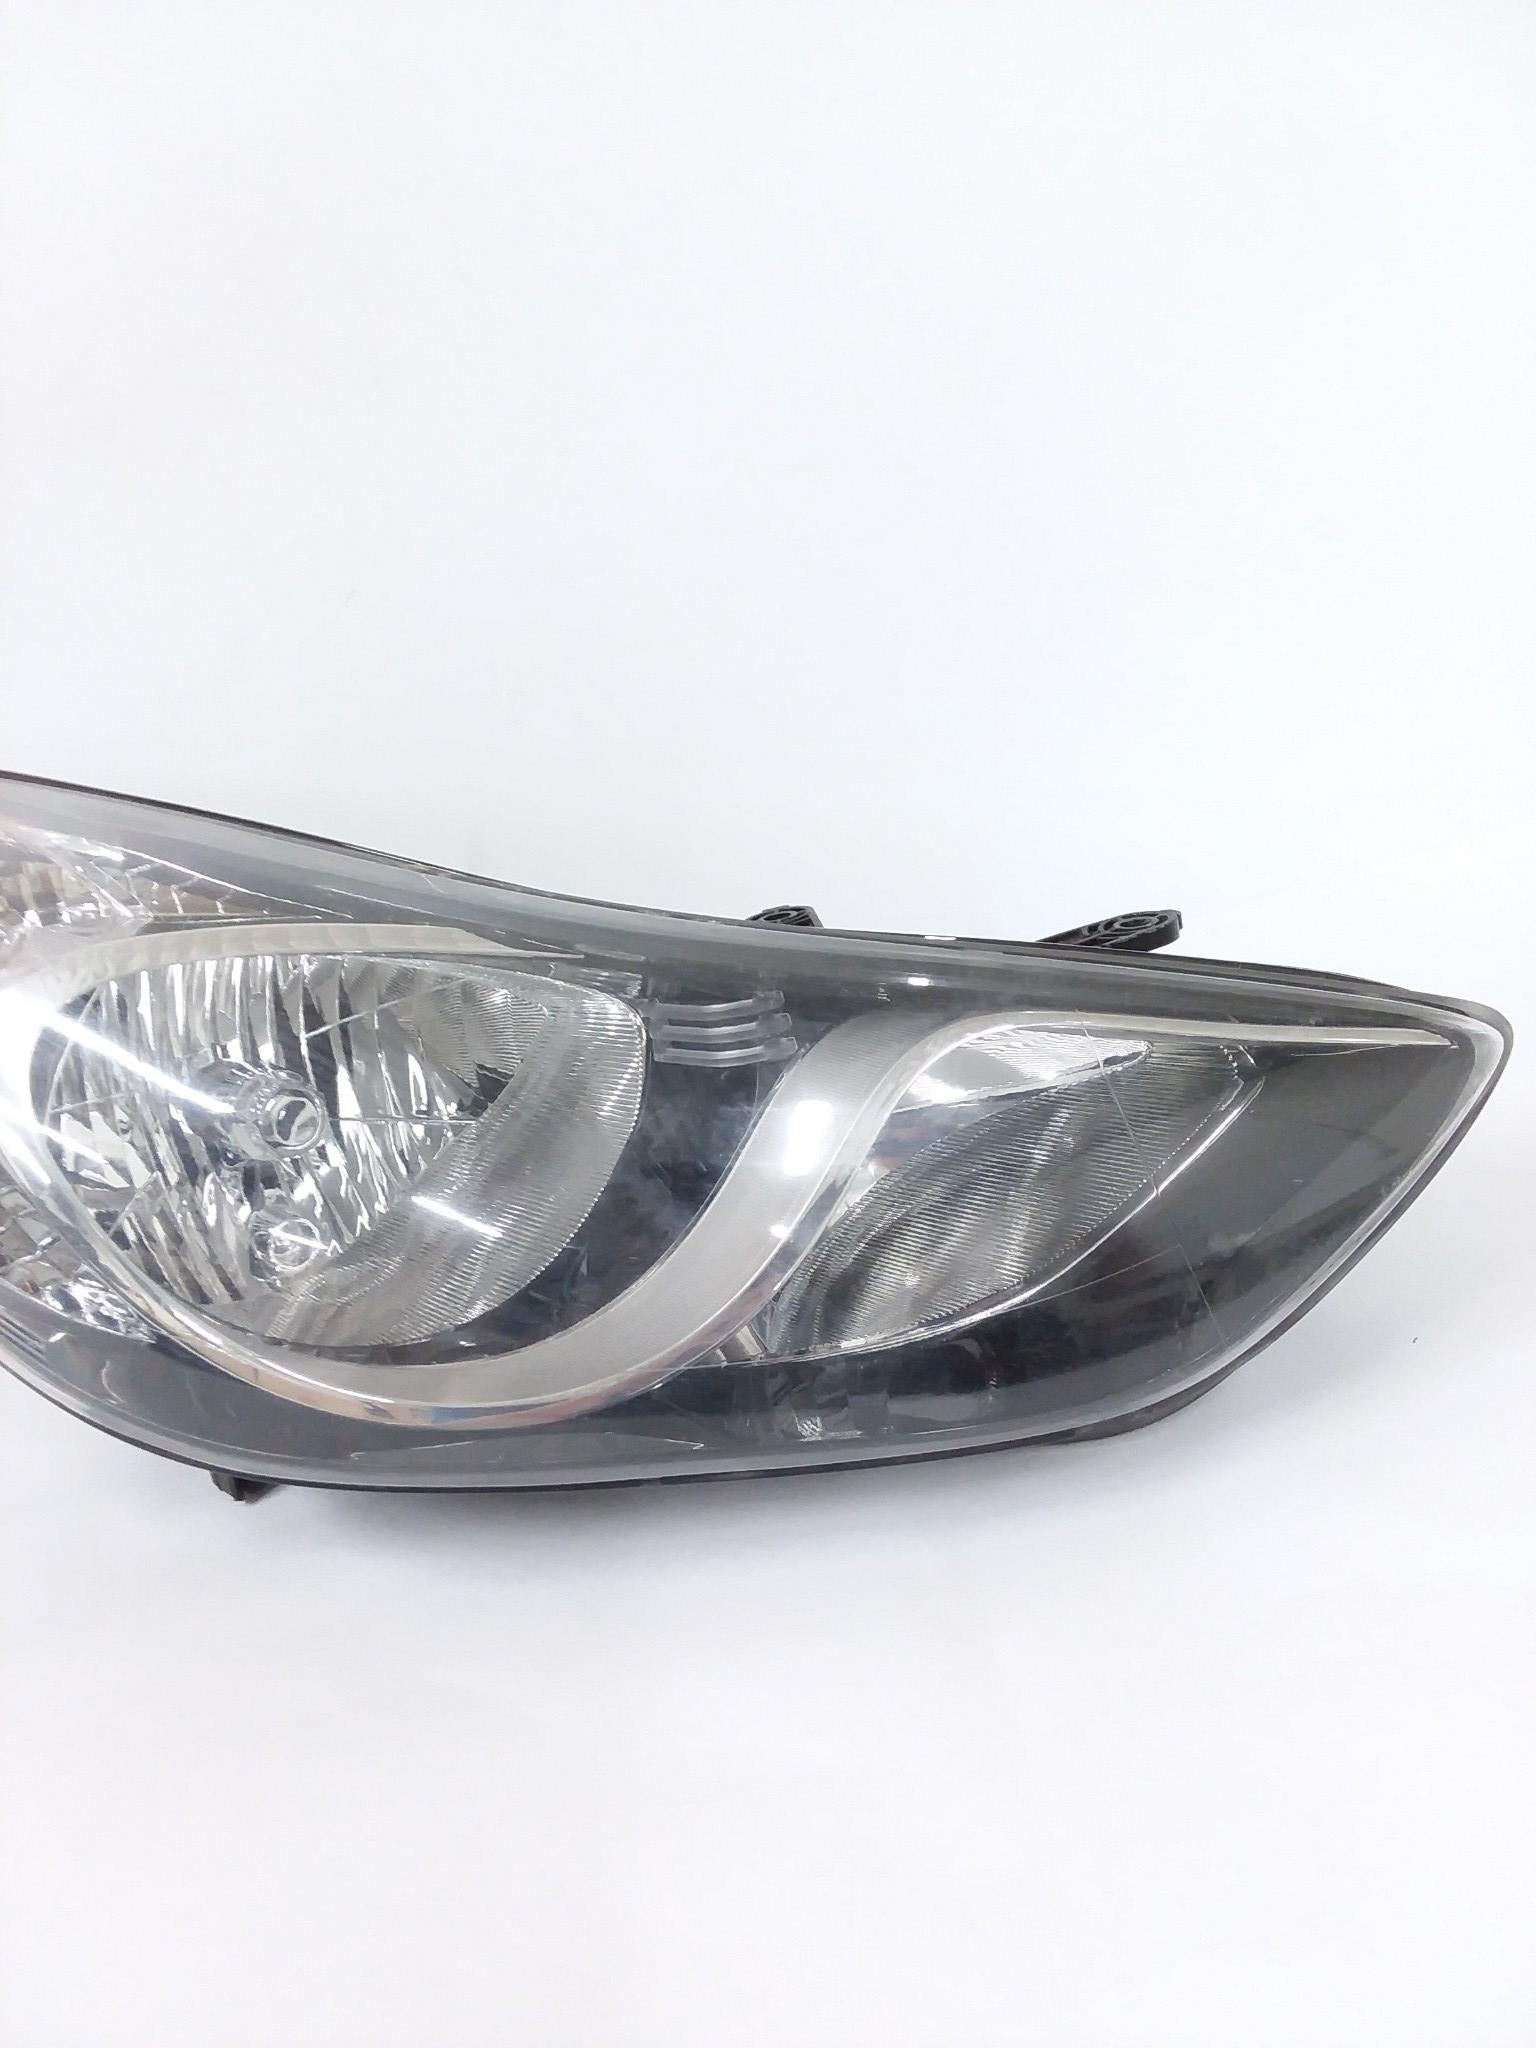 2014 - 2016 Hyundai Elantra Headlight Halogen Right Passenger OEM 92102-3X - Click Receive Auto Parts